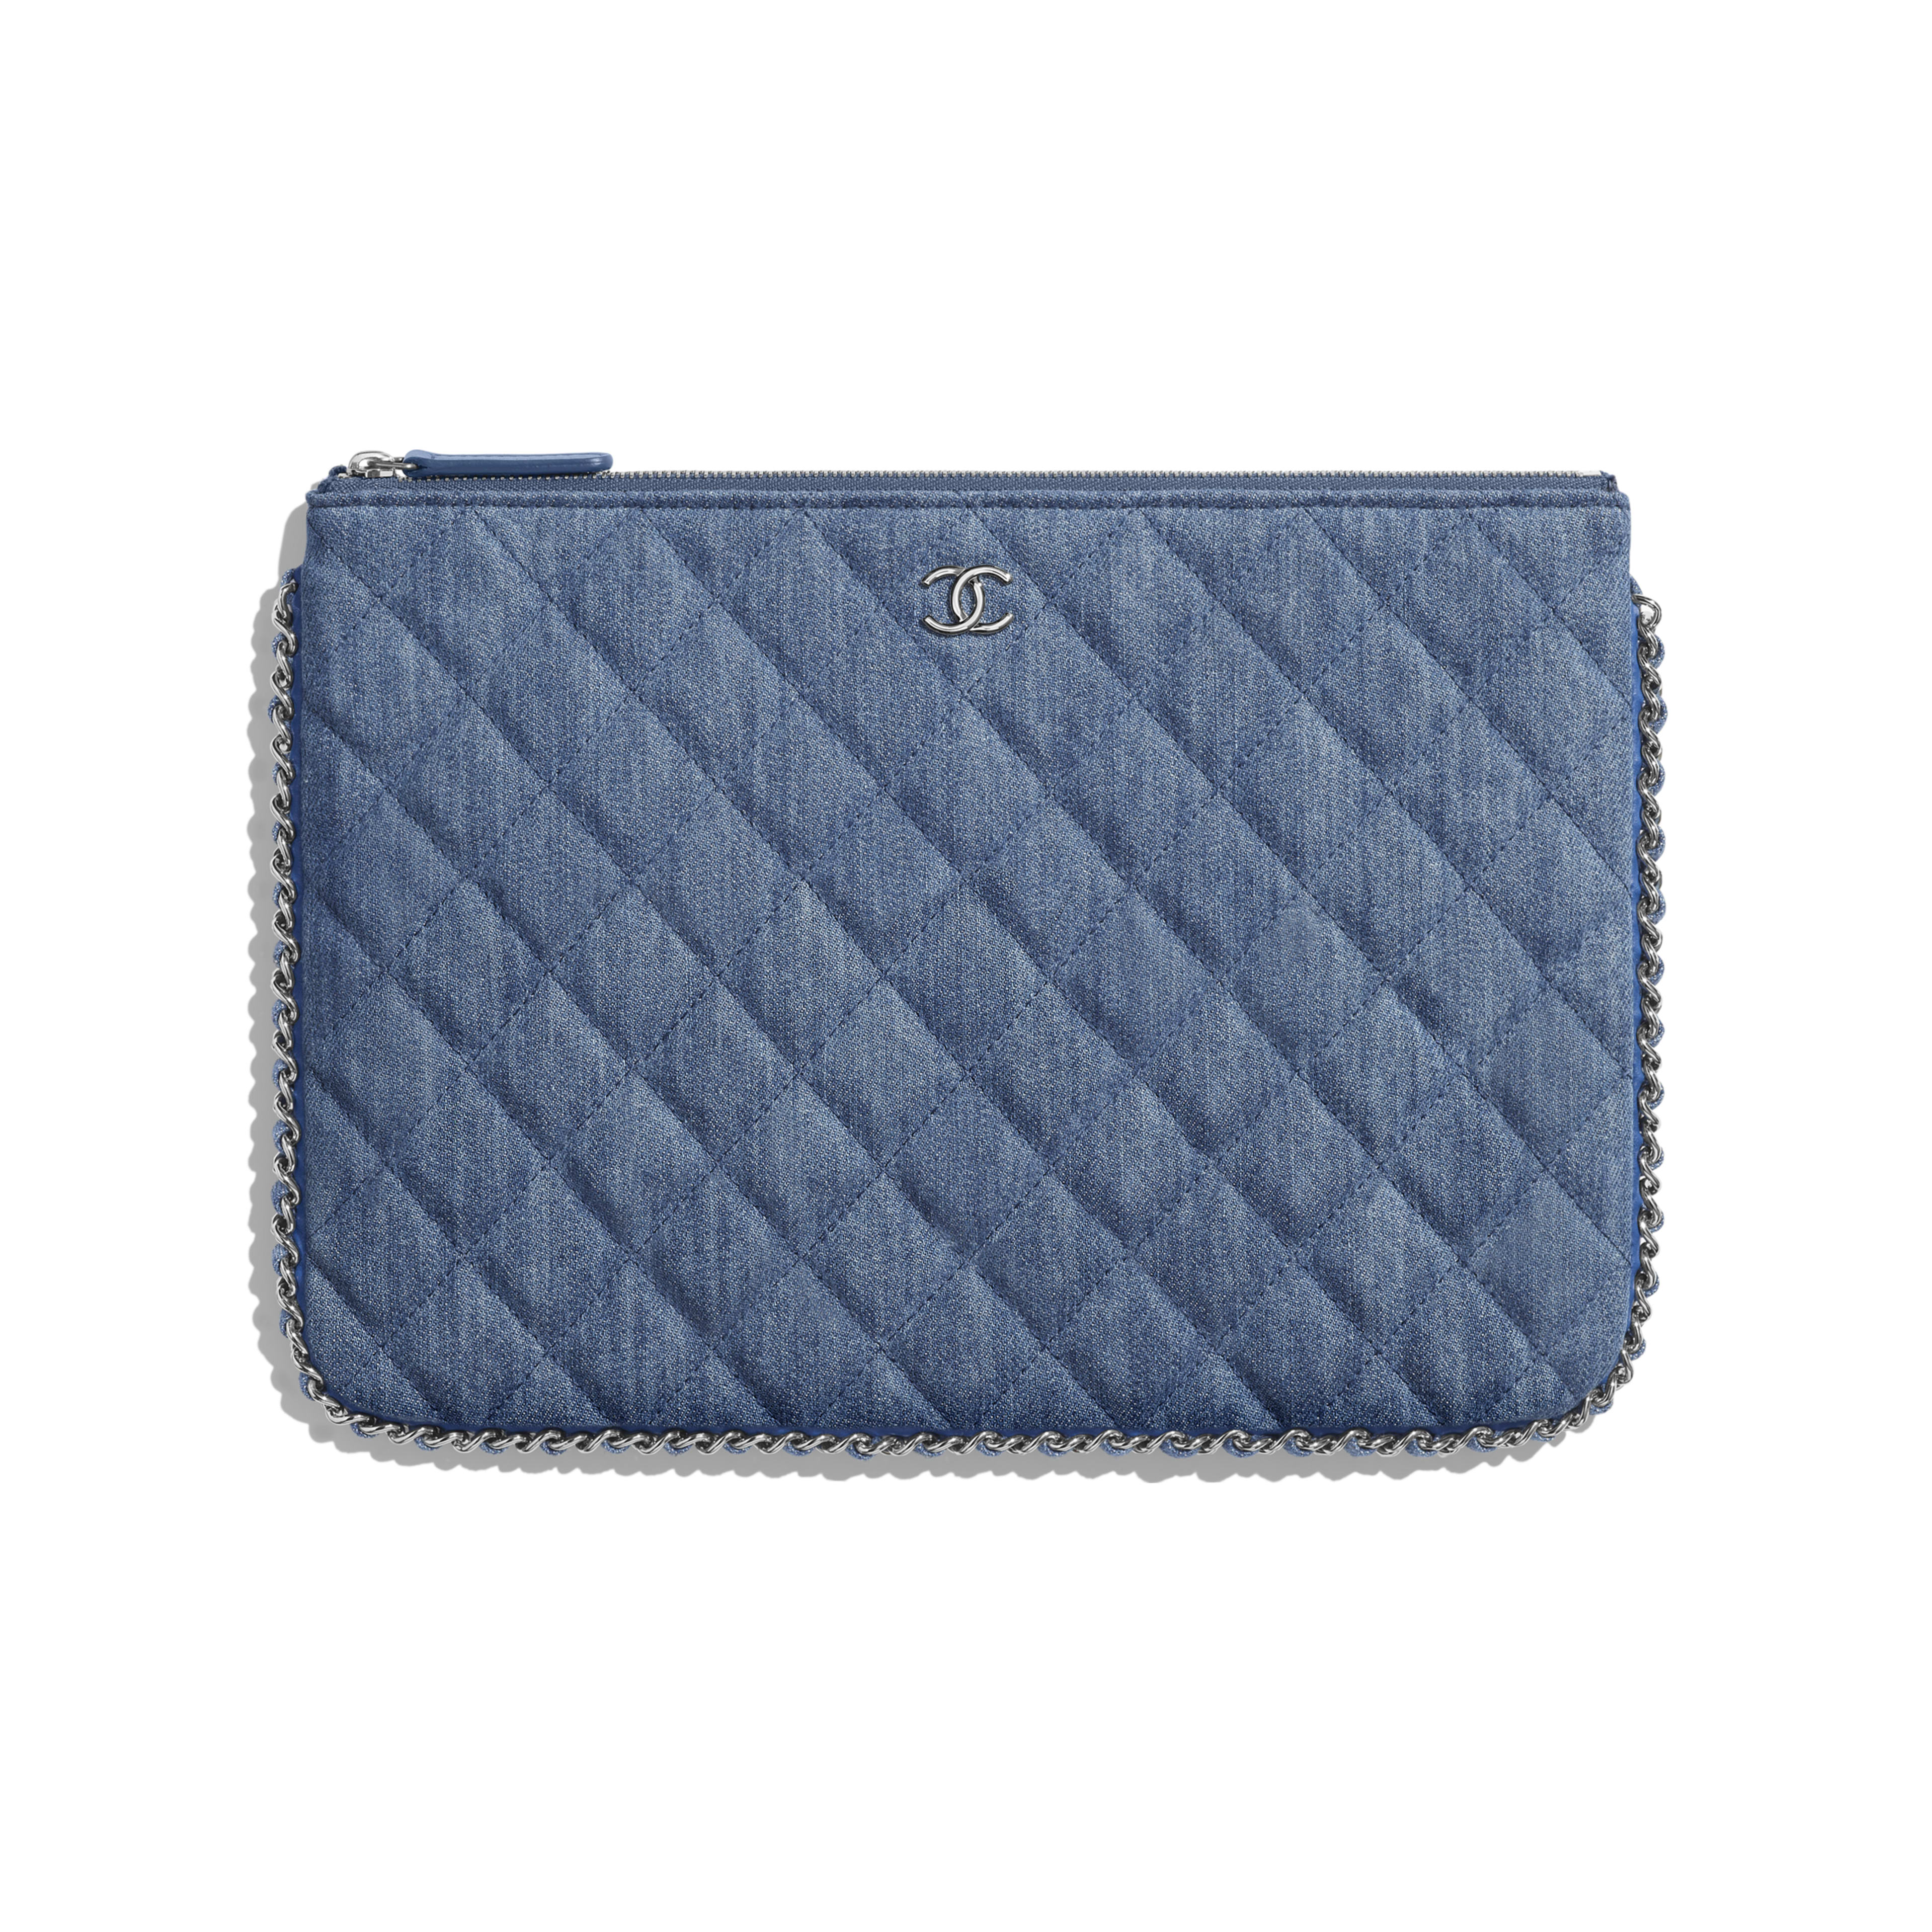 Pouch - Blue - Denim, Chain & Silver-Tone Metal - Default view - see full sized version